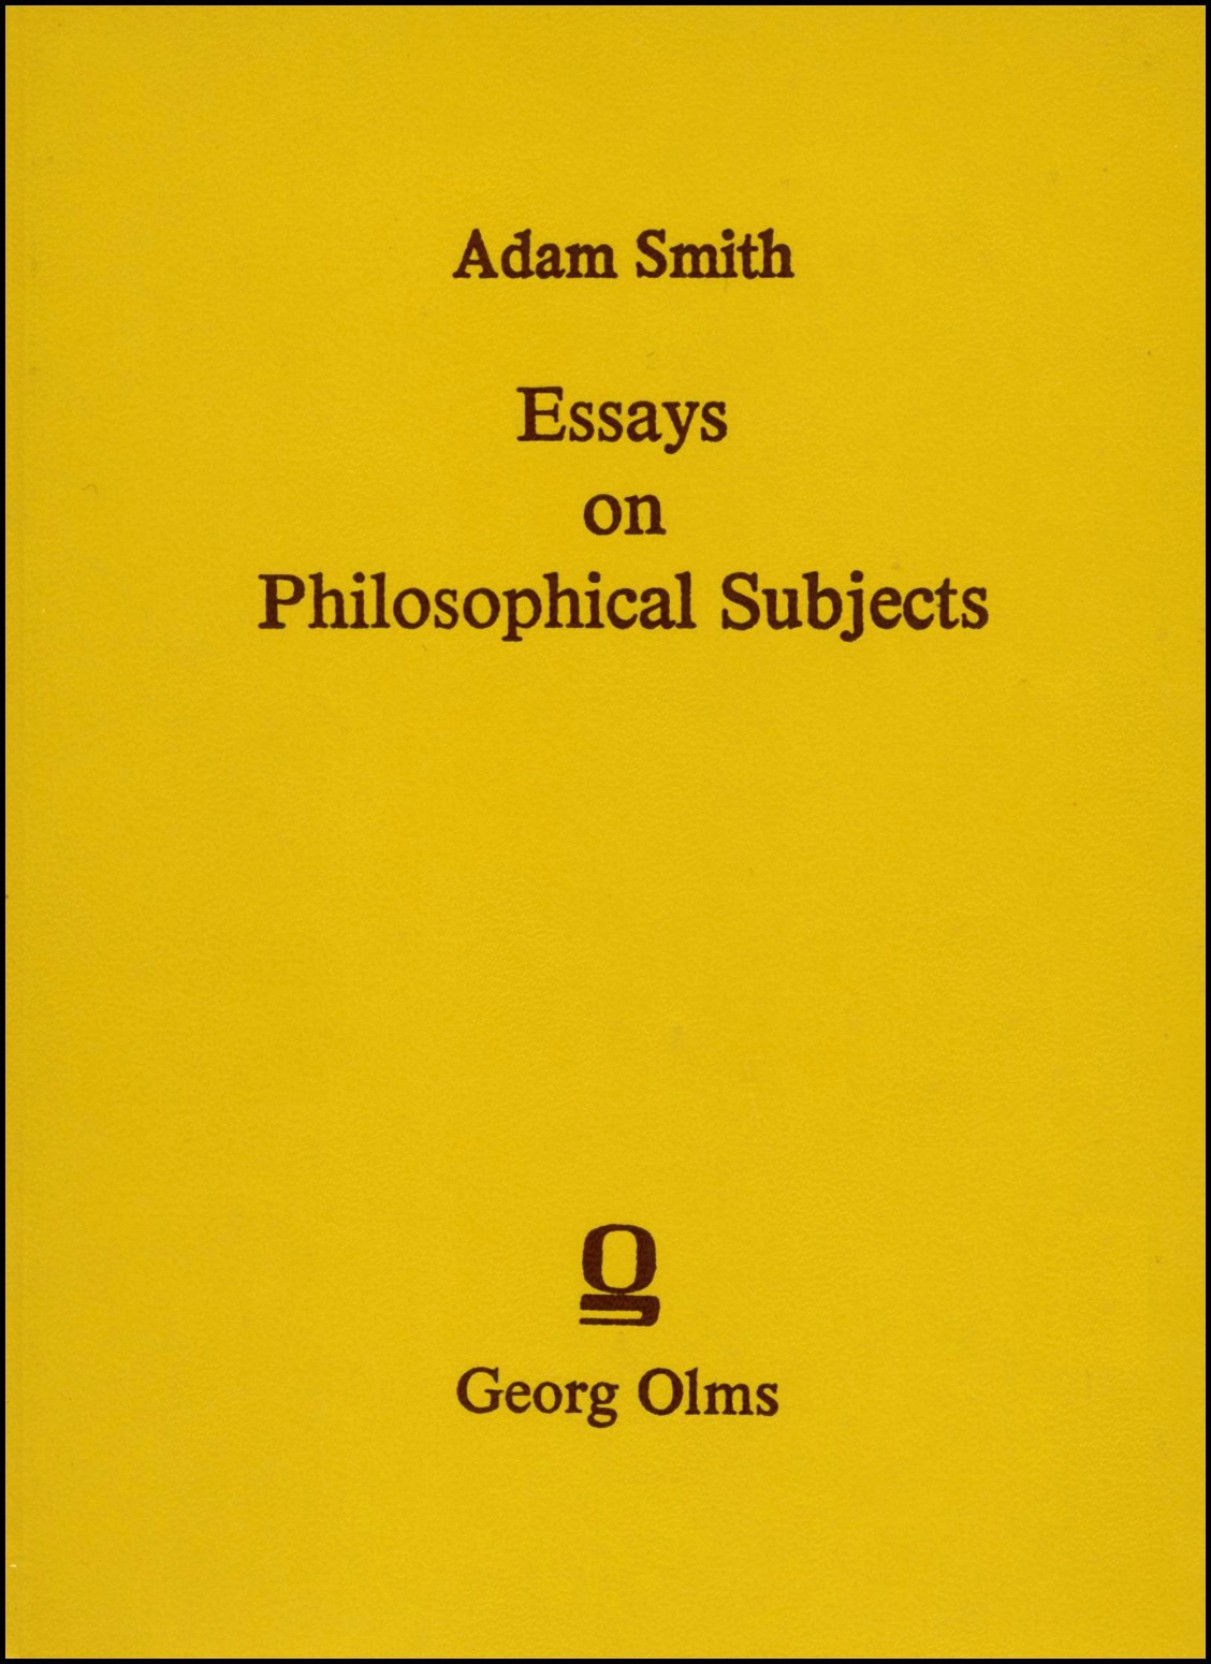 009 Essays On Philosophical Subjects Essay Example To Which Is Prefixed An Account Original Best Summary Adam Smith Full